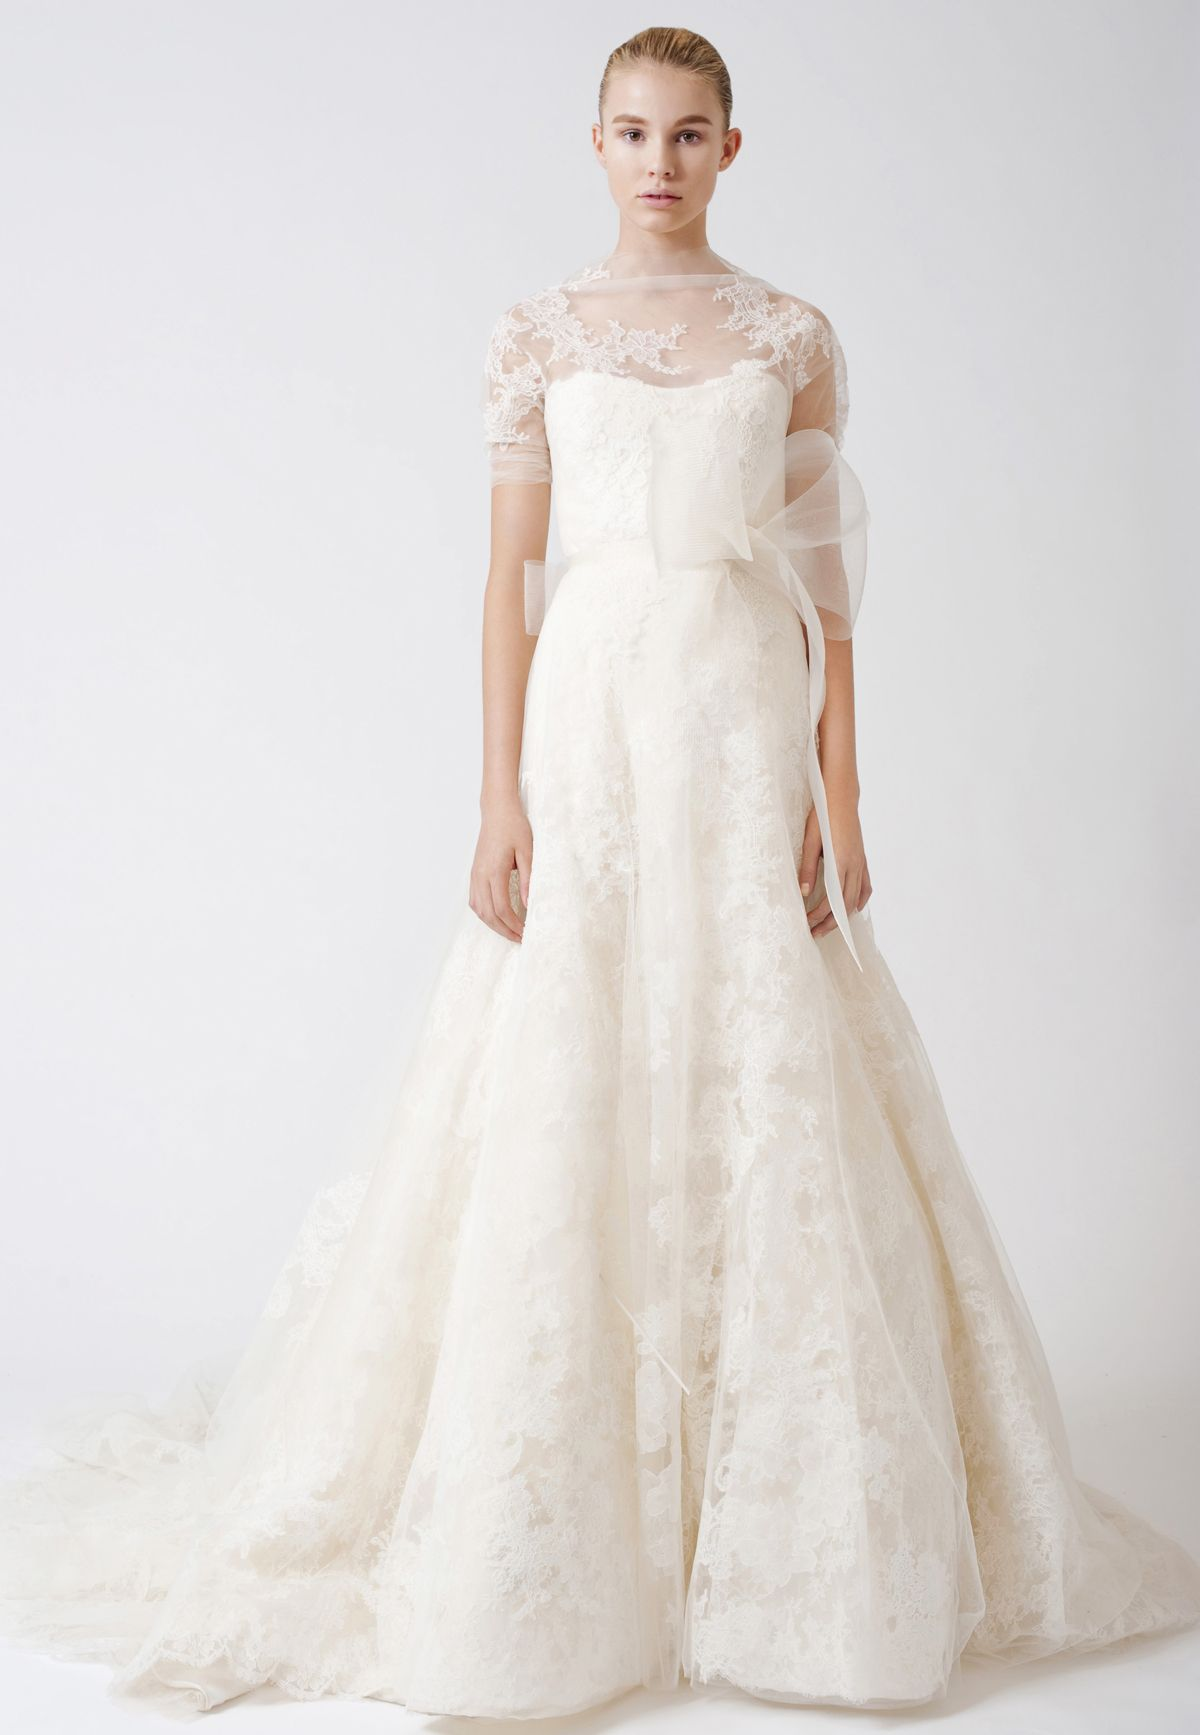 Vera wang lace wedding dress  Image result for esther vera wang  Wed  Pinterest  Lace Wedding